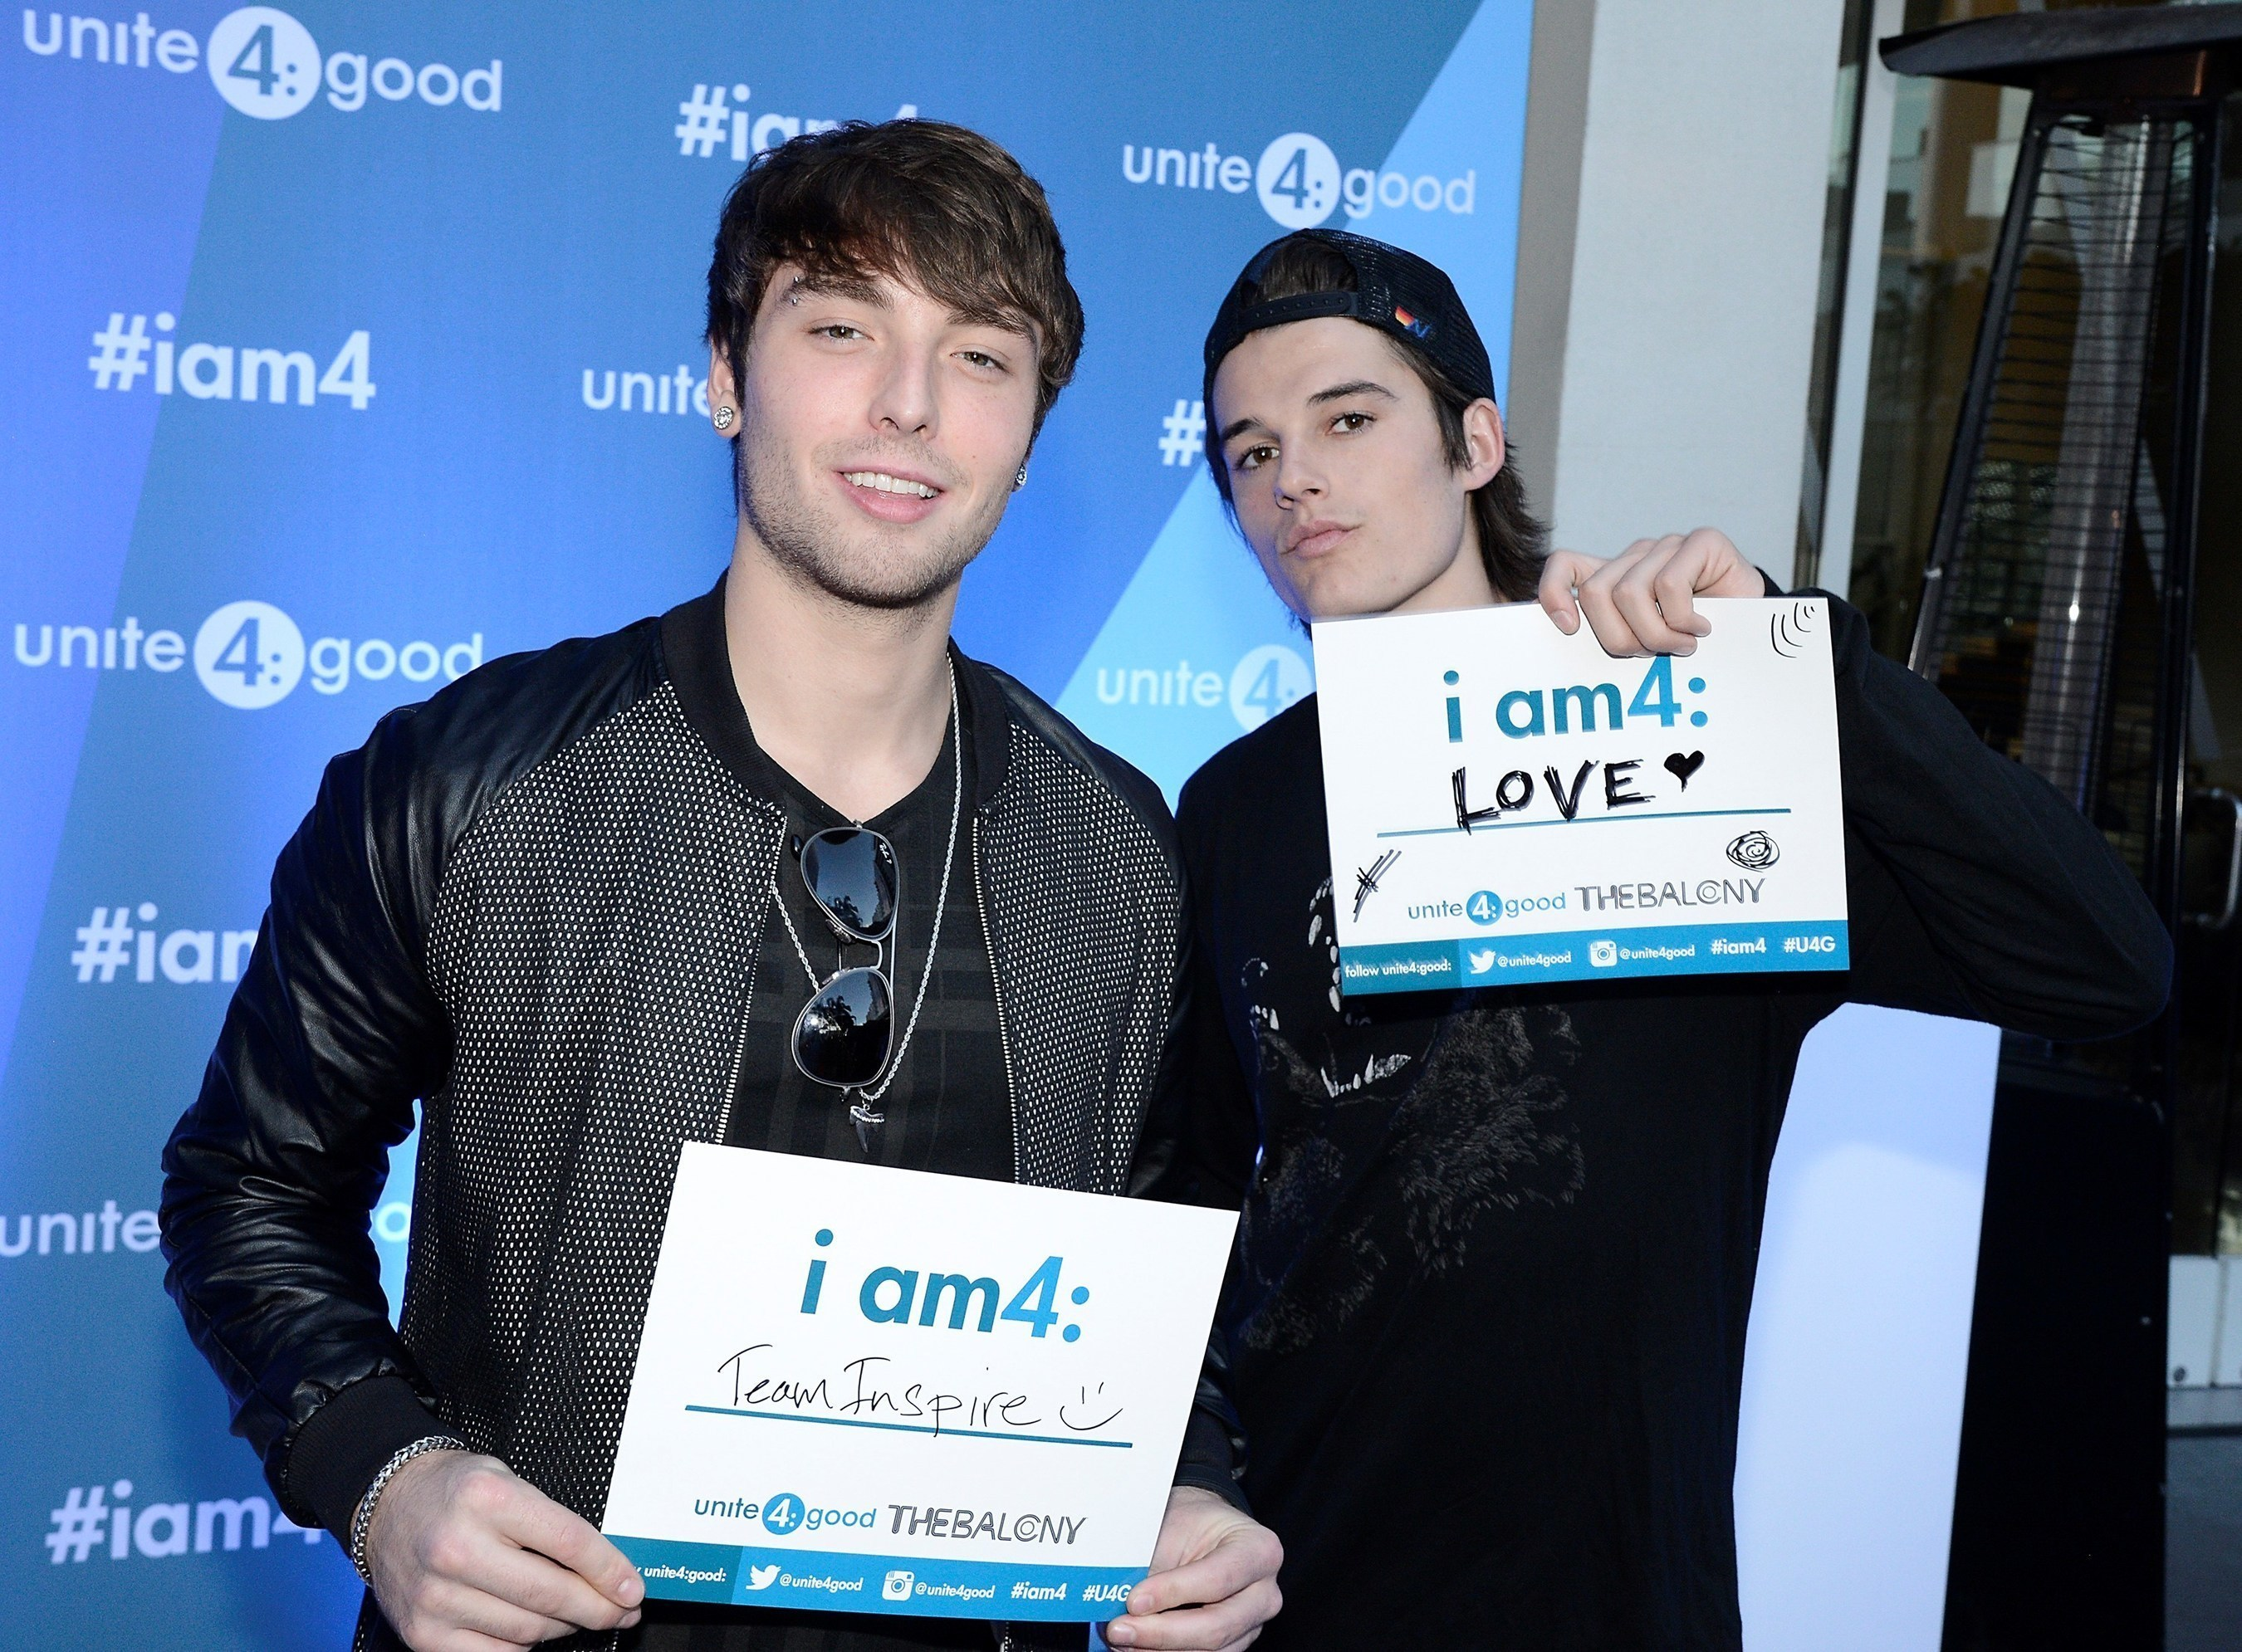 unite4:good's Global Youth Ambassadors Wesley Stromberg And Kenny Holland of THE BALCONY Kick Off First Social Good Initiative For 2015 - 2016